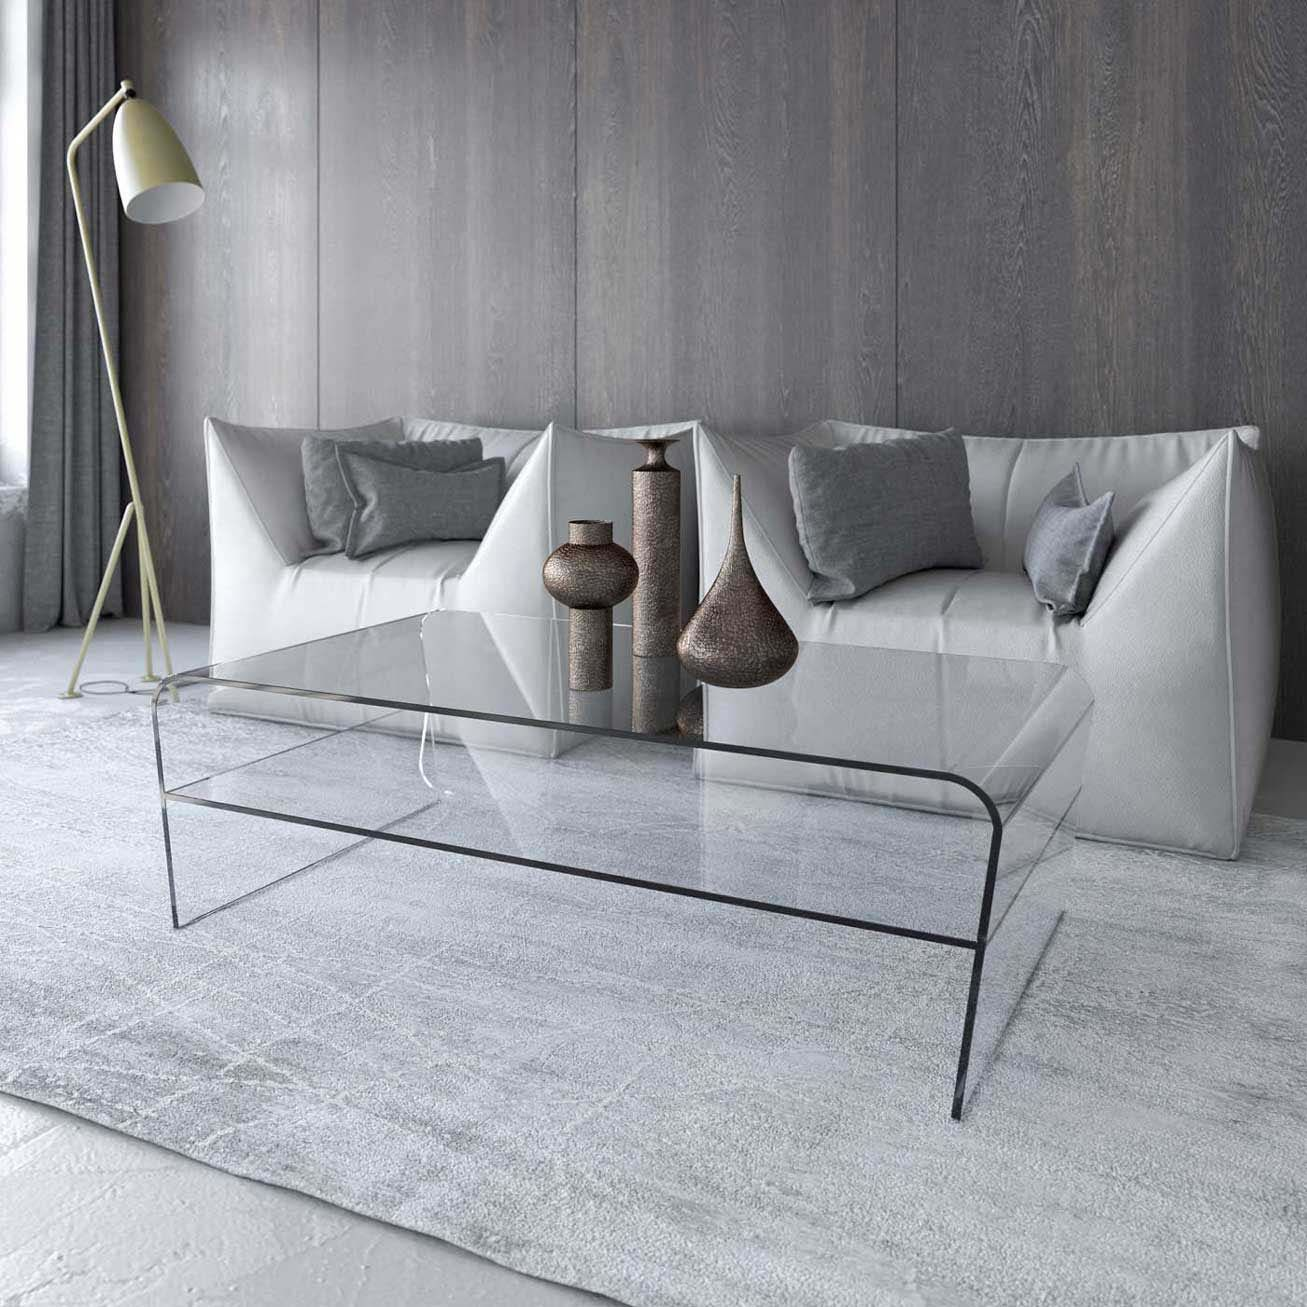 Oblique Curved Glass Coffee Table Klarity Glass Furniture Coffee Table Table Glass Coffee Table [ 1307 x 1307 Pixel ]